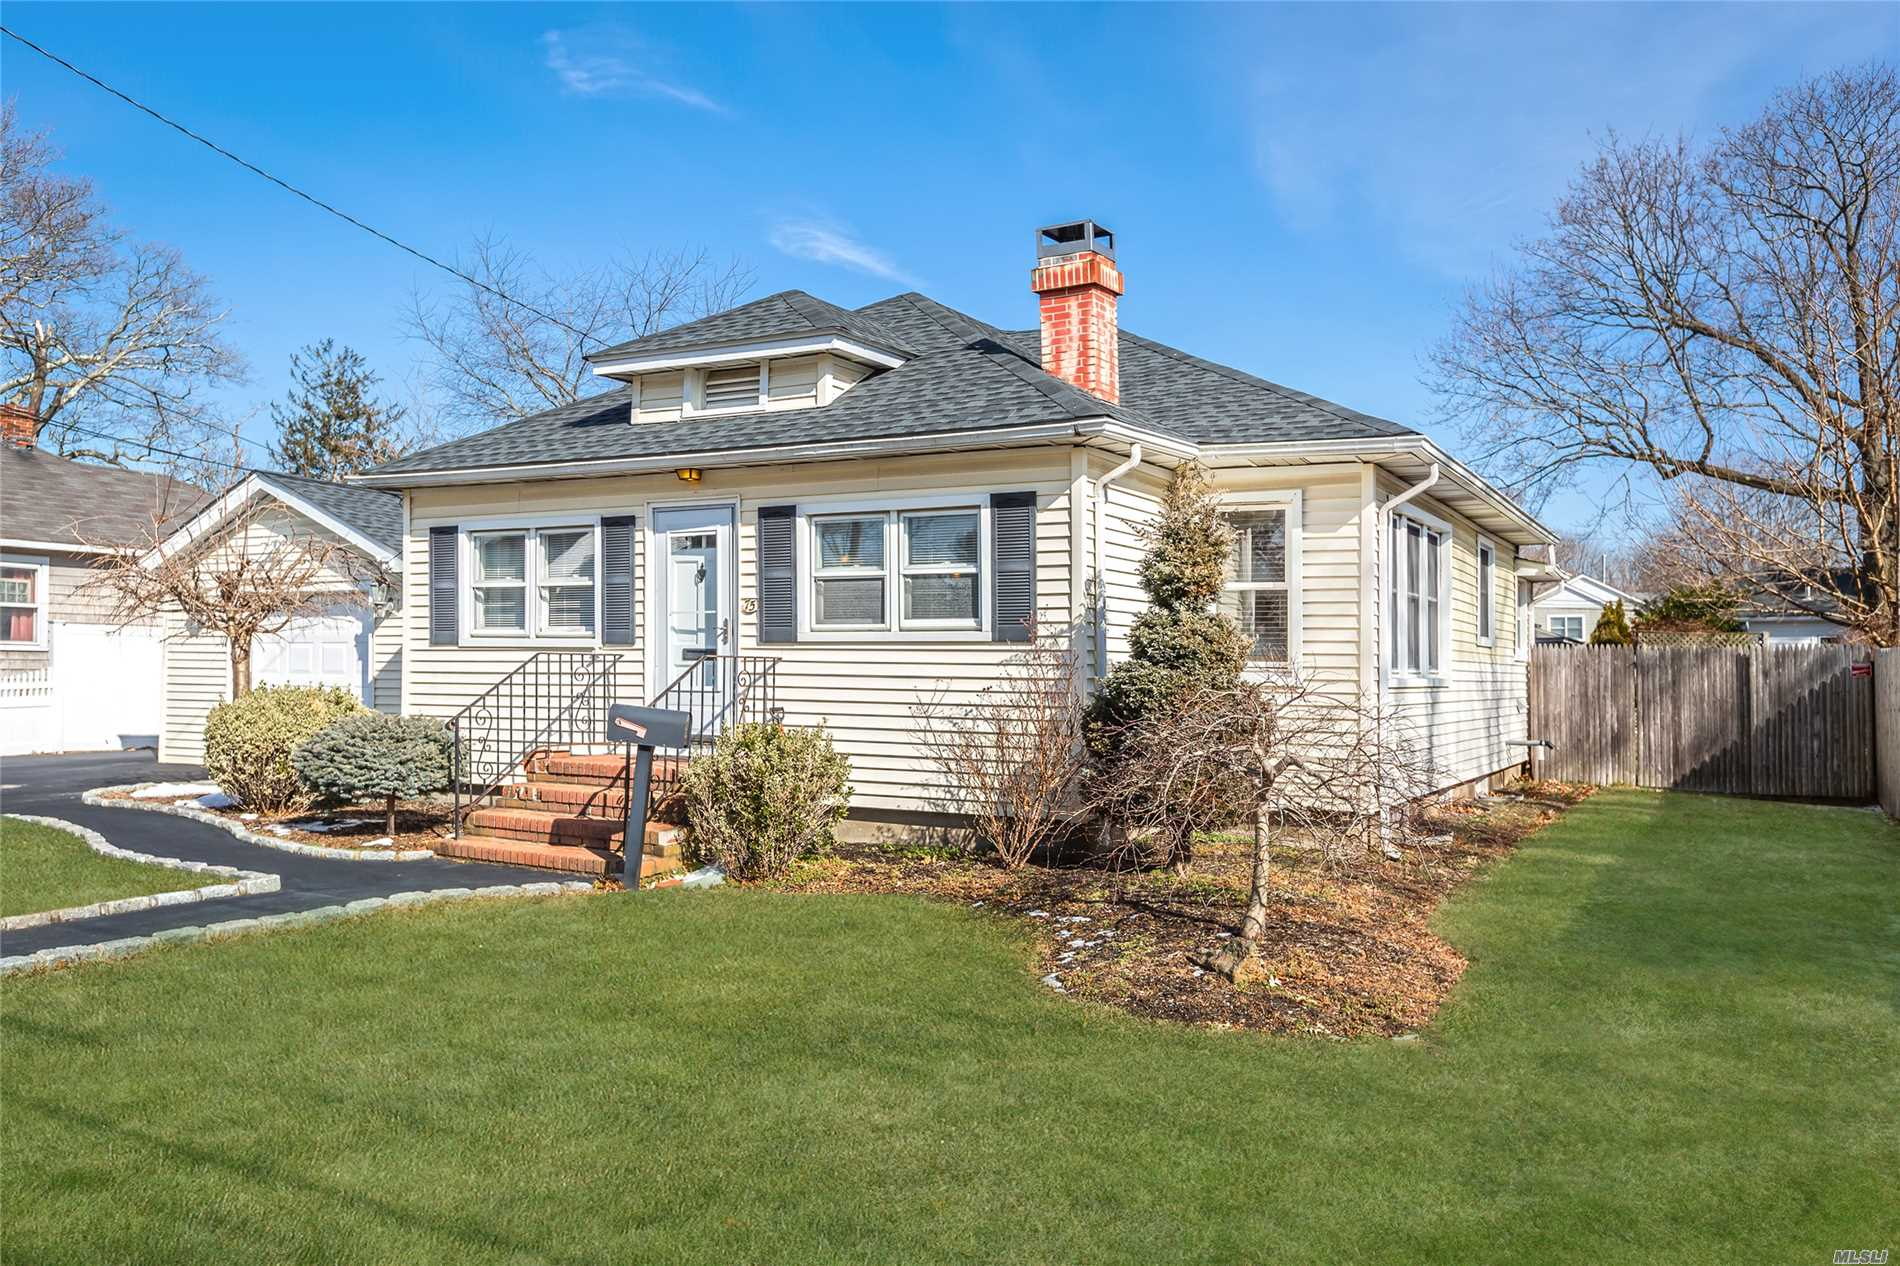 Move Right In To This Precious Ranch With Open Floor Plan. Beautiful Kitchen With Coffered Ceiling & Breakfast Bar Overlooking Nice Size Living Room. Detached Garage With Outsde Covered Bar....Ideal For Those Summer Gatherings. Full Basement, Wood Floors & Central Air Conditioning. Don't Miss!